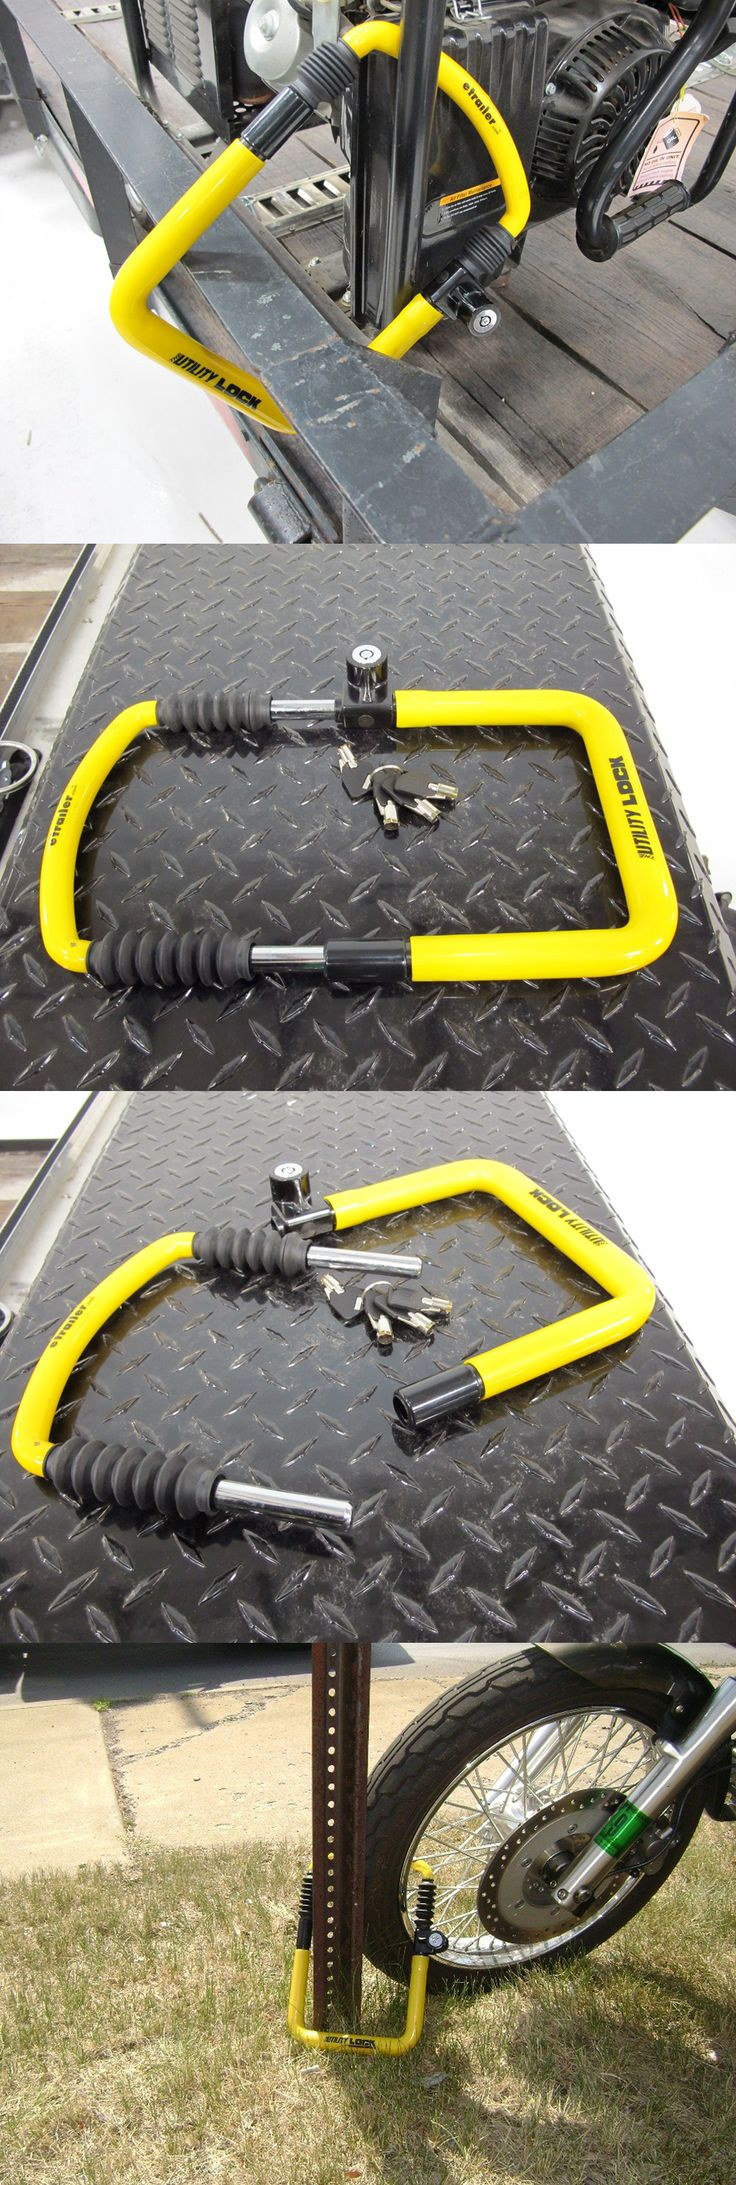 Need some ideas for storing and securing your property safely? This is an awesome accessory for preventing theft of your motorcycle, equipment and mid-size gear. The adjustable length provides a snug fit and is coated with non-scratch vinyl - a great sized lock for a variety of tools and gear.